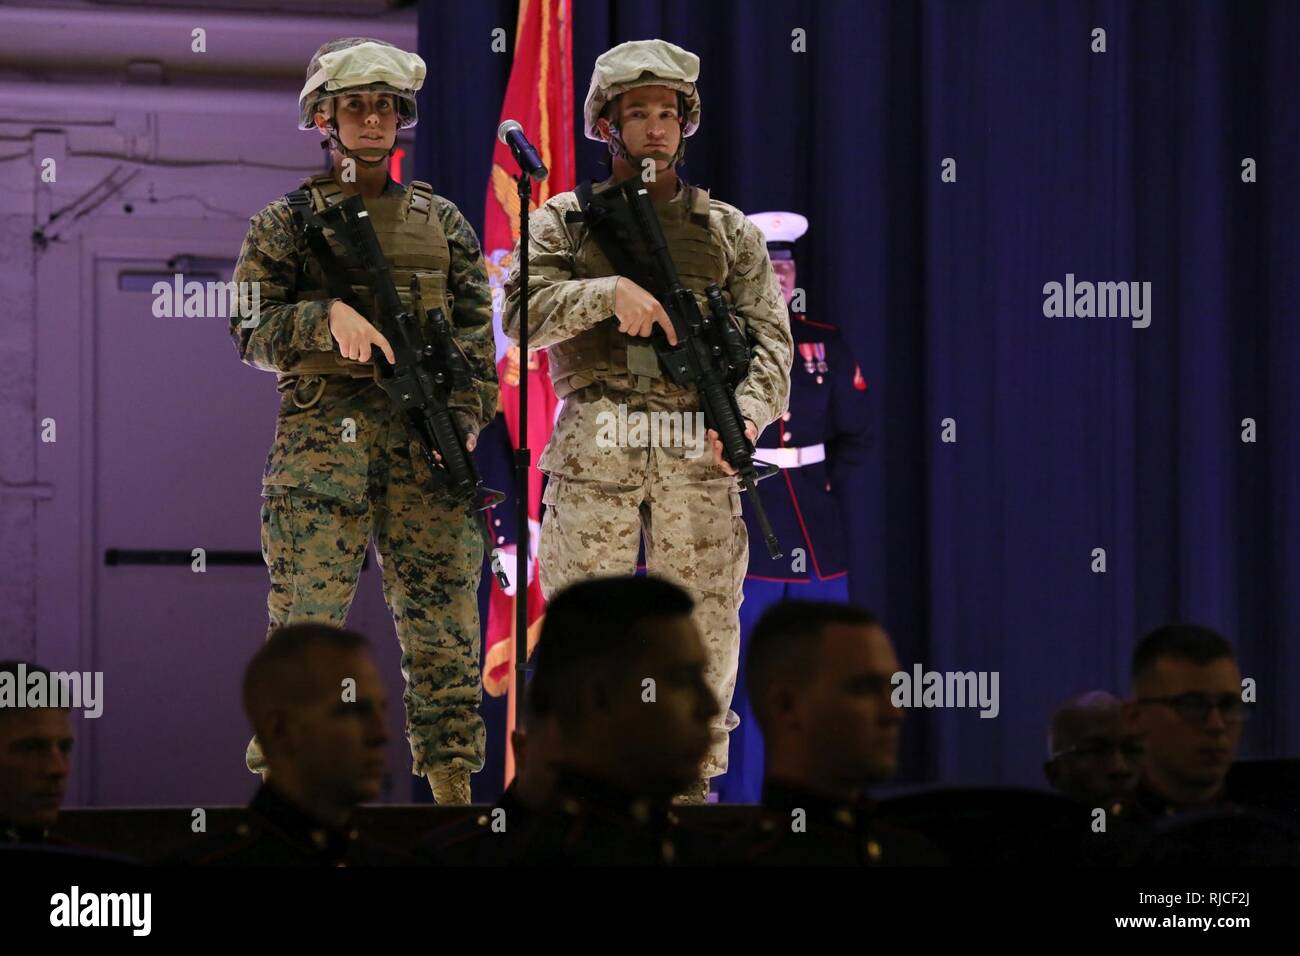 Cpl. Kayla Gilstrap (left) and Lance Cpl. Robert Rocco represent modern day Marines during the annual Historic Uniform Pageant aboard Marine Corps Air Station Cherry Point, N.C., Nov. 4, 2016. The pageant is held to honor the Marine Corps' birthday and features Marines wearing uniforms from all major conflicts the Marine Corps has fought in. The pageant depicts the Corps' long illustrious history throughout decades of warfighting. The pageant also included a traditional cake-cutting ceremony representing the passing of traditions from the eldest Marine to the youngest. - Stock Image